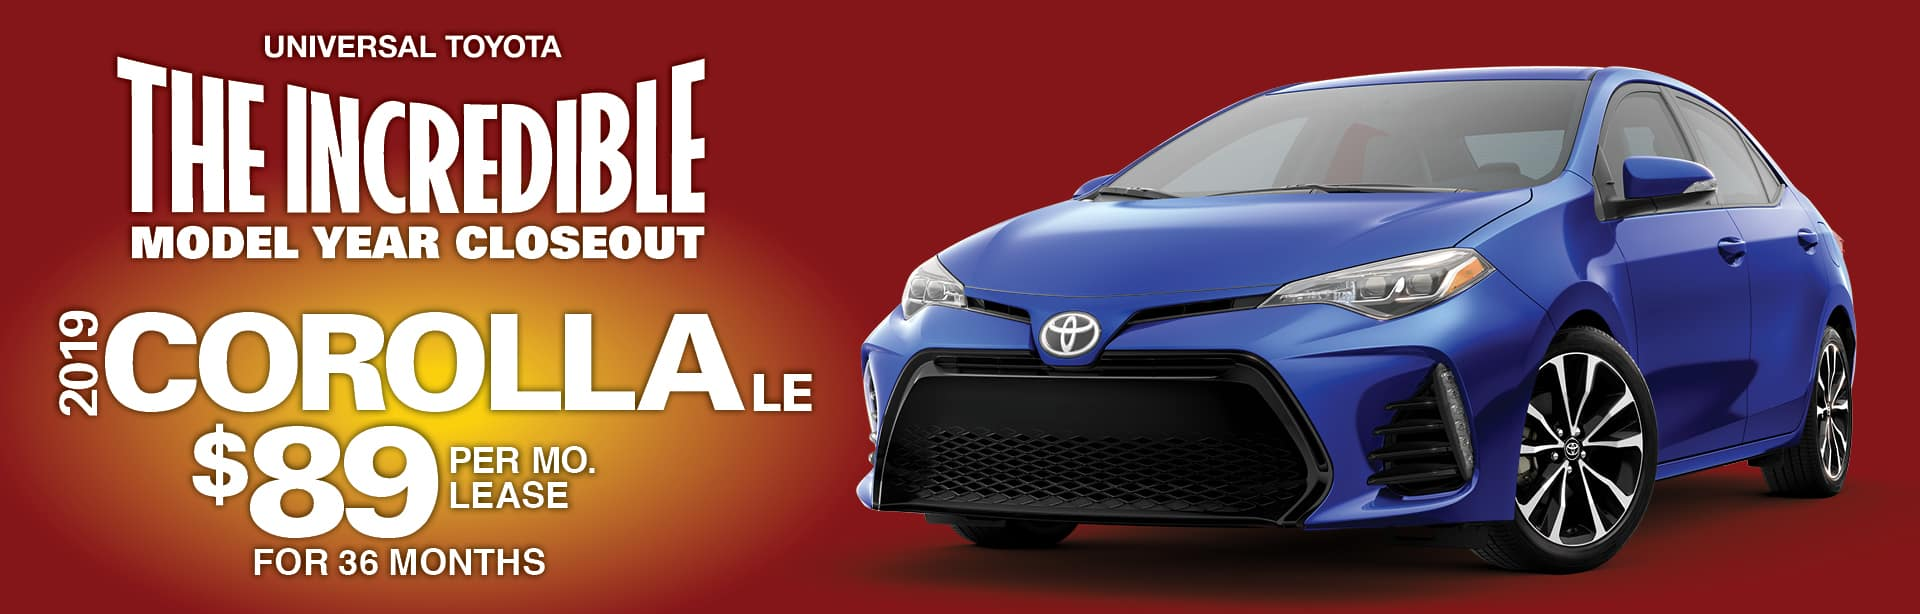 12K Miles Per Year For 36 Months, With Approved Credit Through Toyota  Financial Services. Includes $822.23 Dealer Discount.